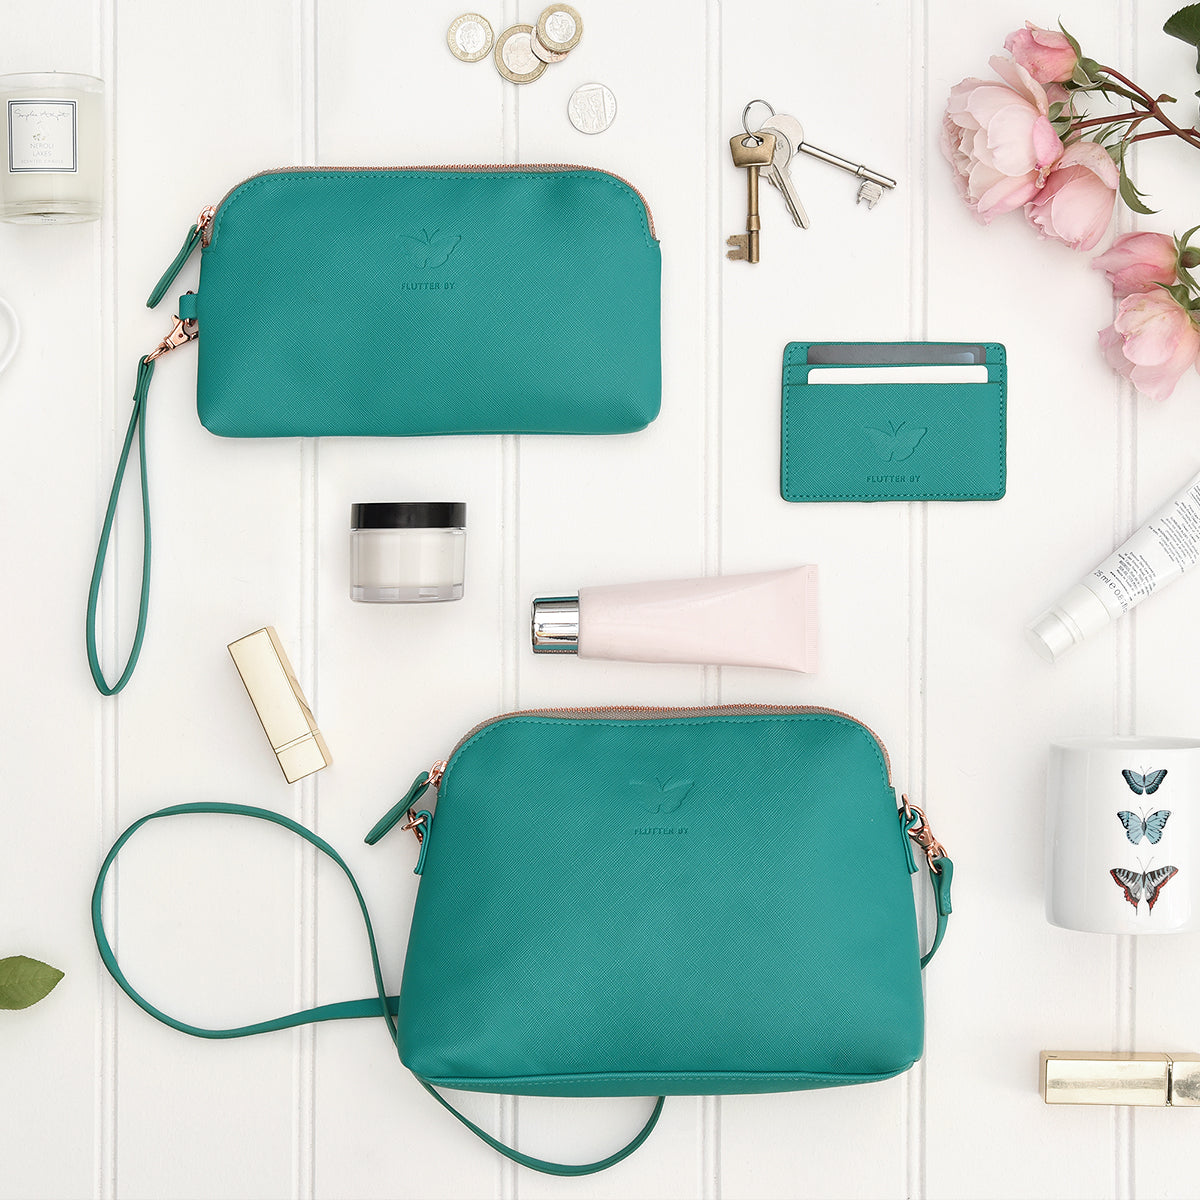 Turquoise Mini Shoulder Bag by Sophie Allport made from faux leather.